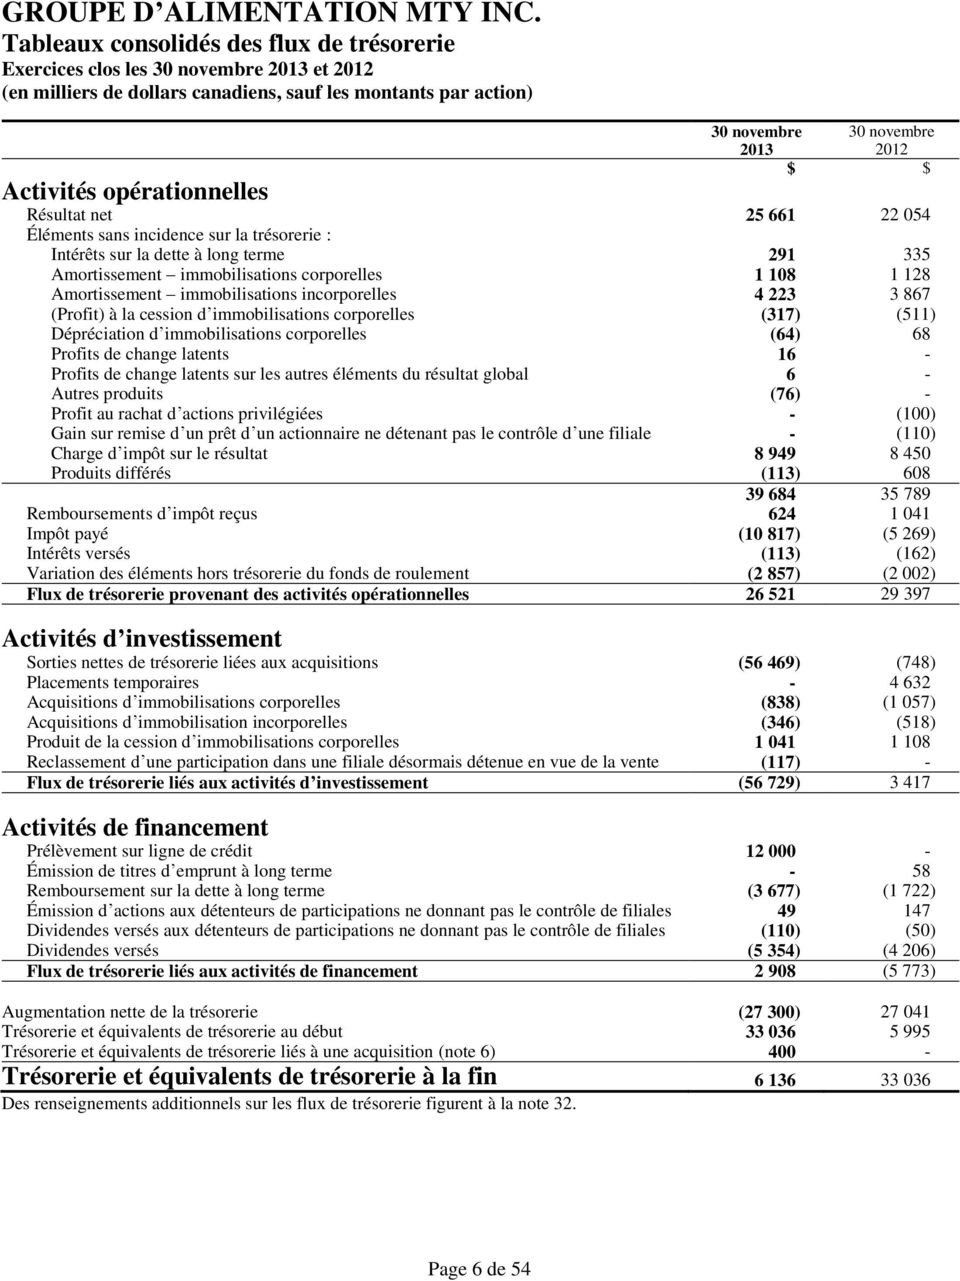 cession d immobilisations corporelles (317) (511) Dépréciation d immobilisations corporelles (64) 68 Profits de change latents 16 - Profits de change latents sur les autres éléments du résultat